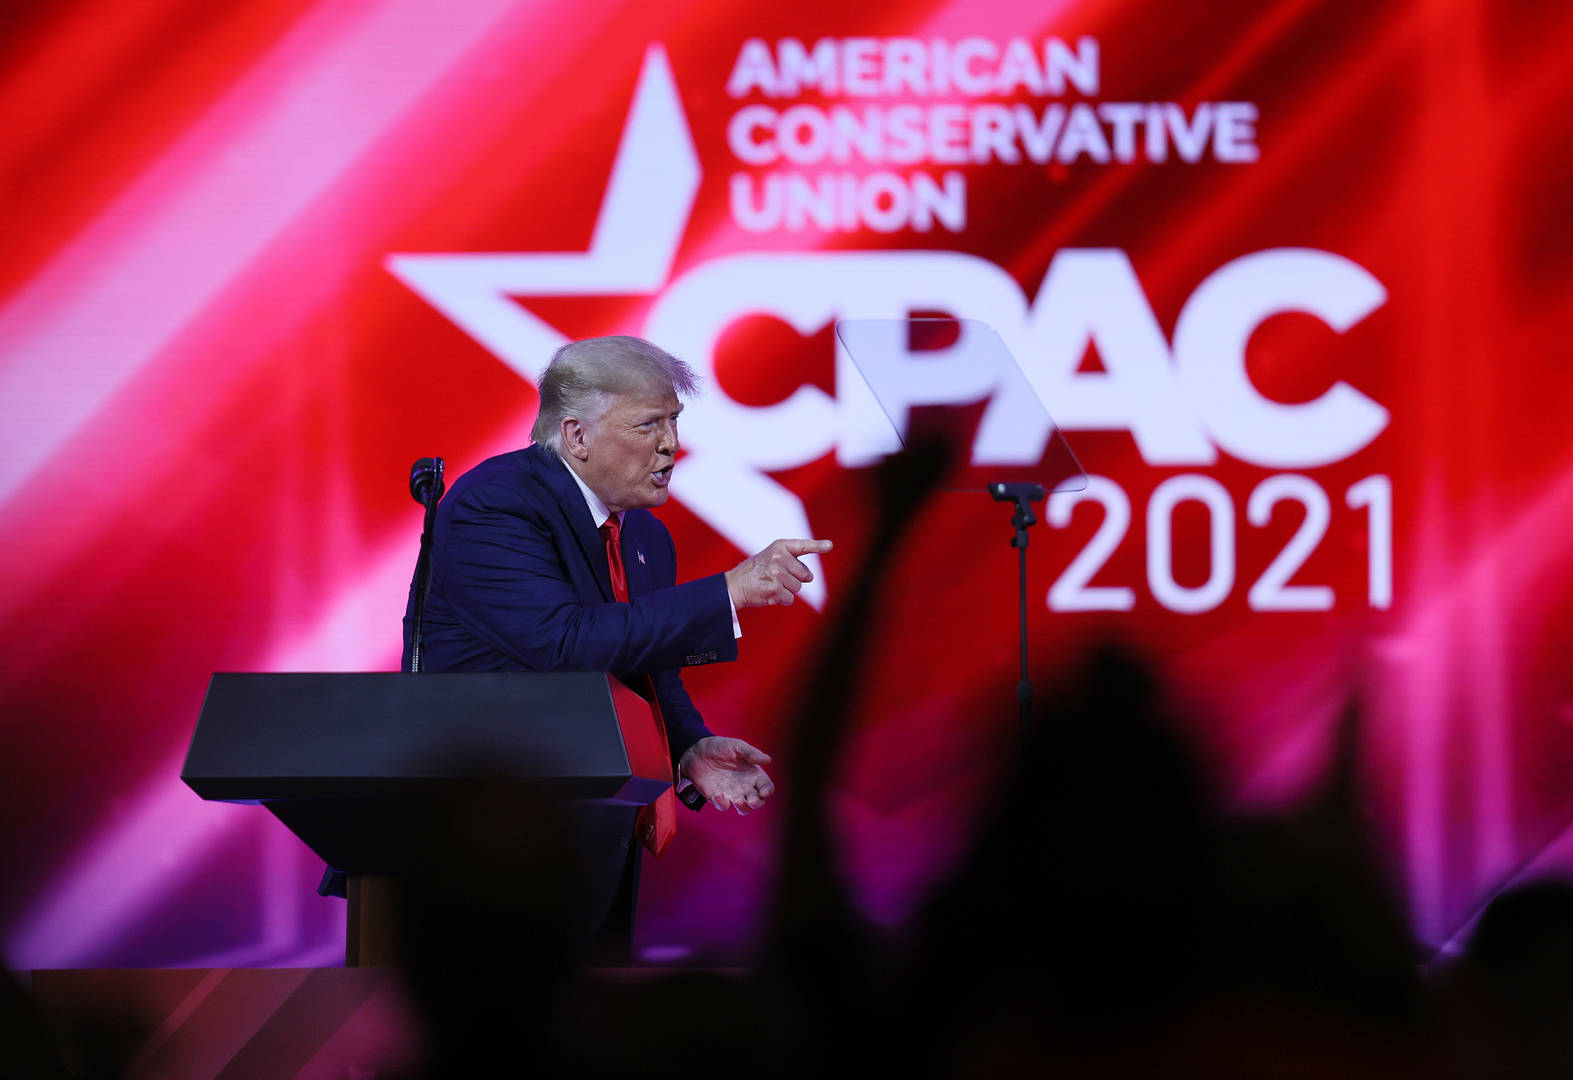 Former U.S. President Donald Trump addresses the Conservative Political Action Conference (CPAC) held in the Hyatt Regency on February 28, 2021 in Orlando, Florida